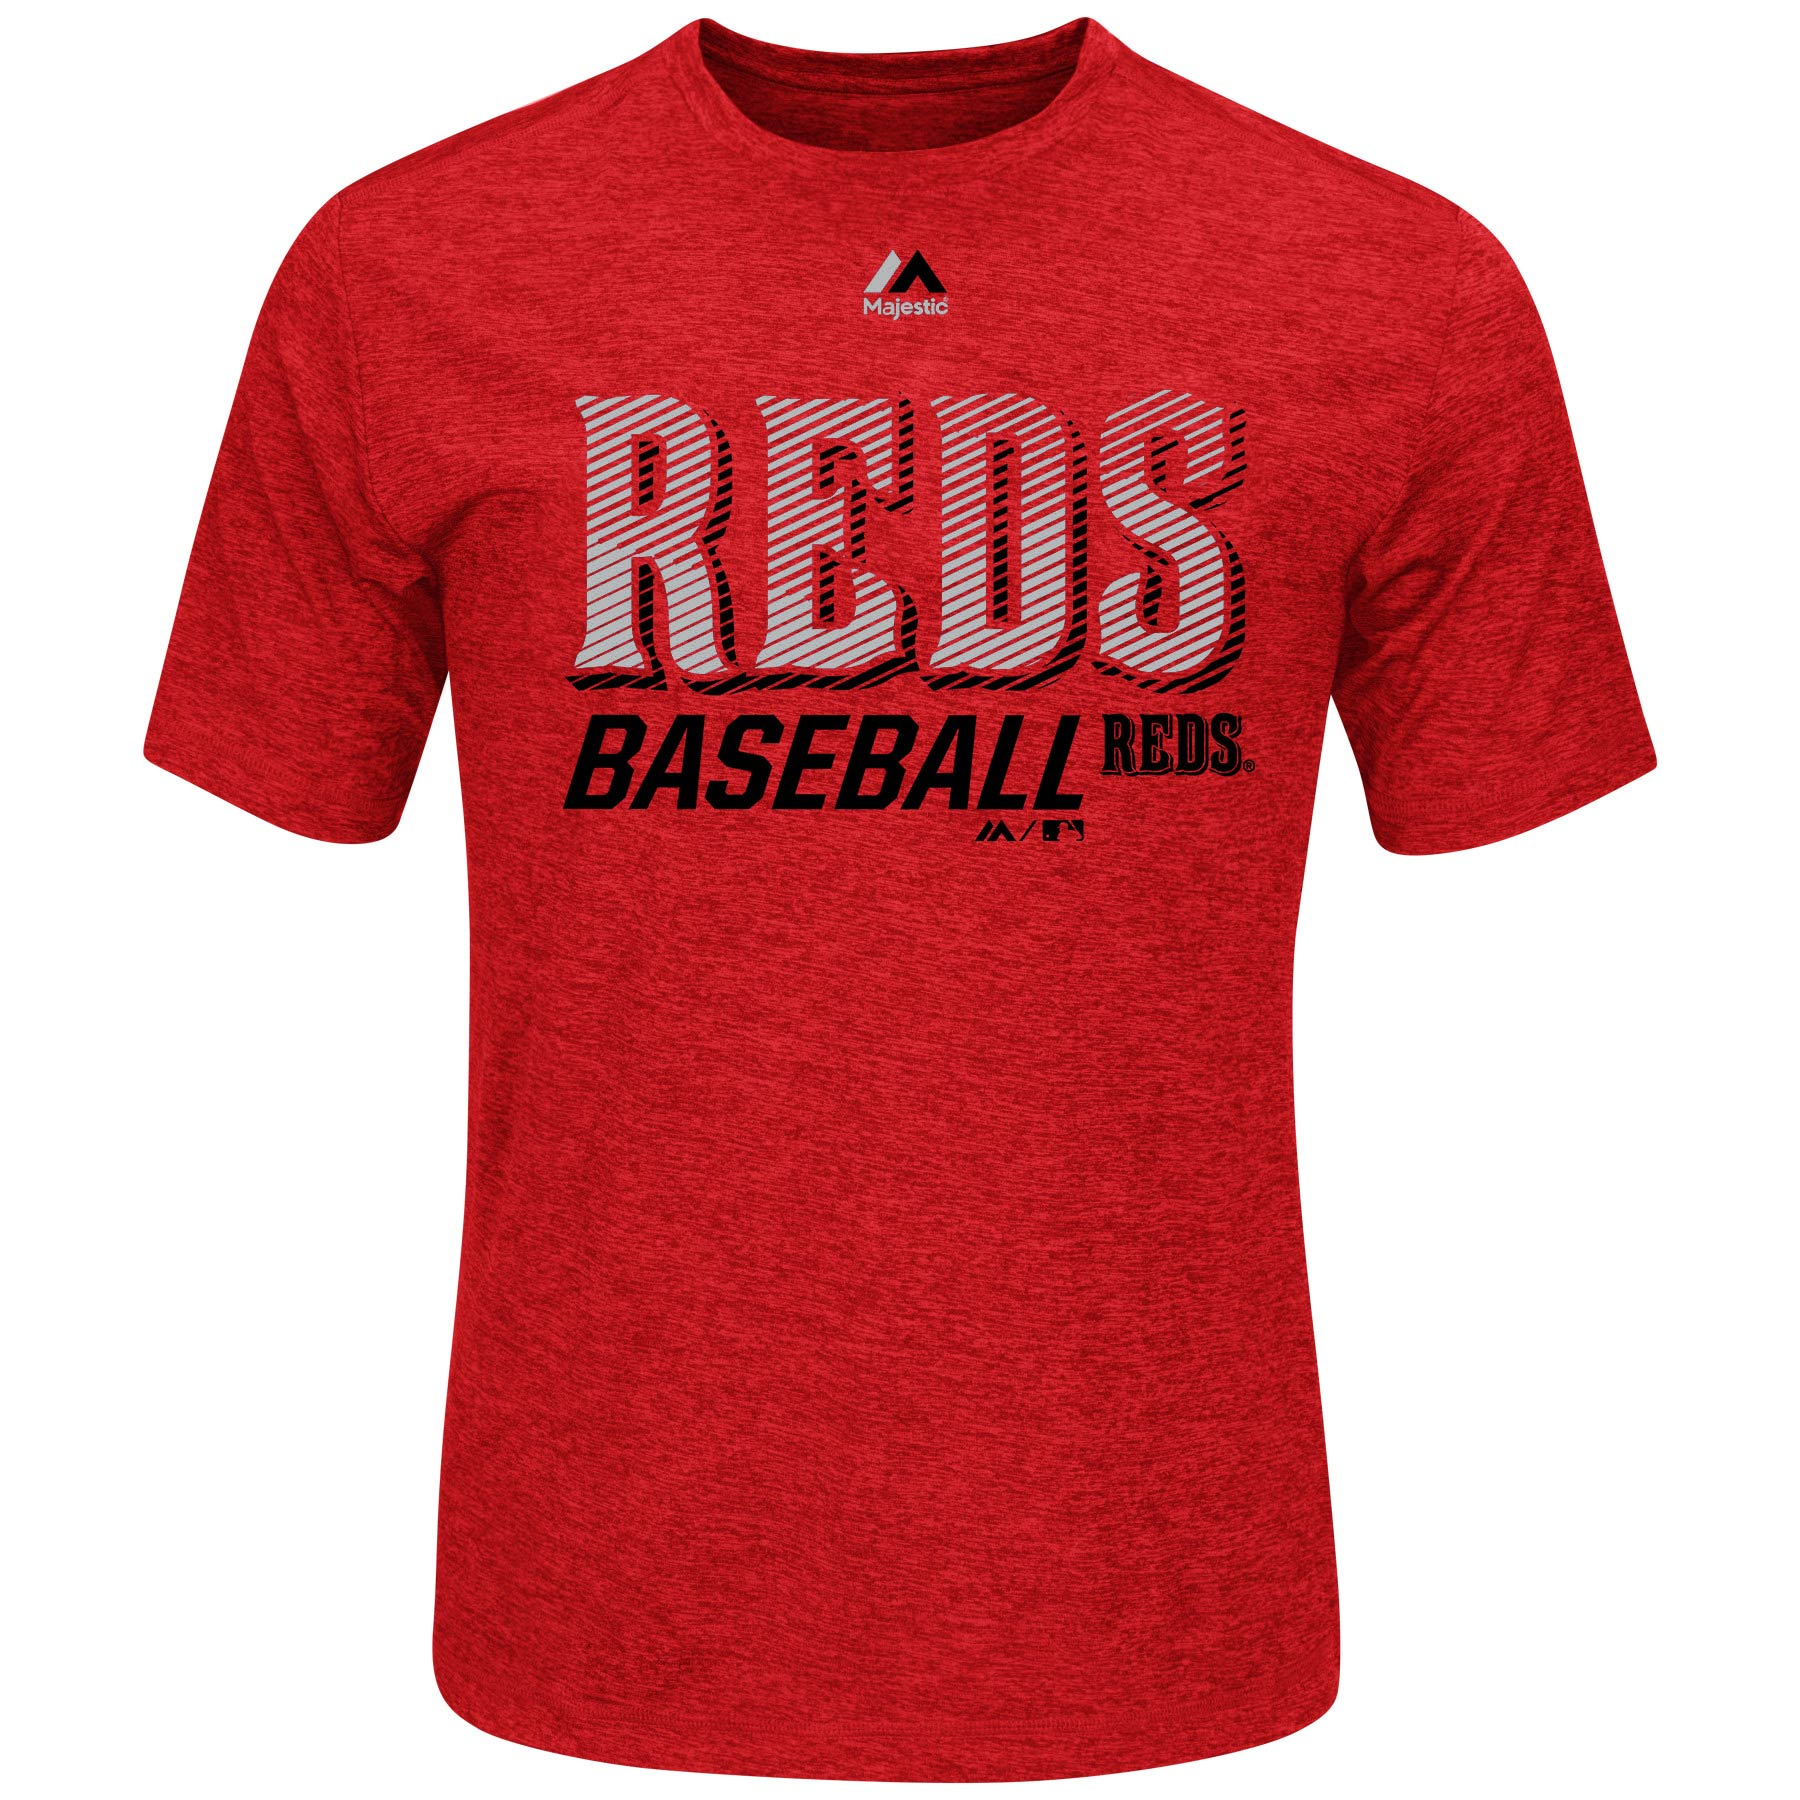 Men's Majestic Red Cincinnati Reds Out of Reach Cool Base T-Shirt by MAJESTIC LSG